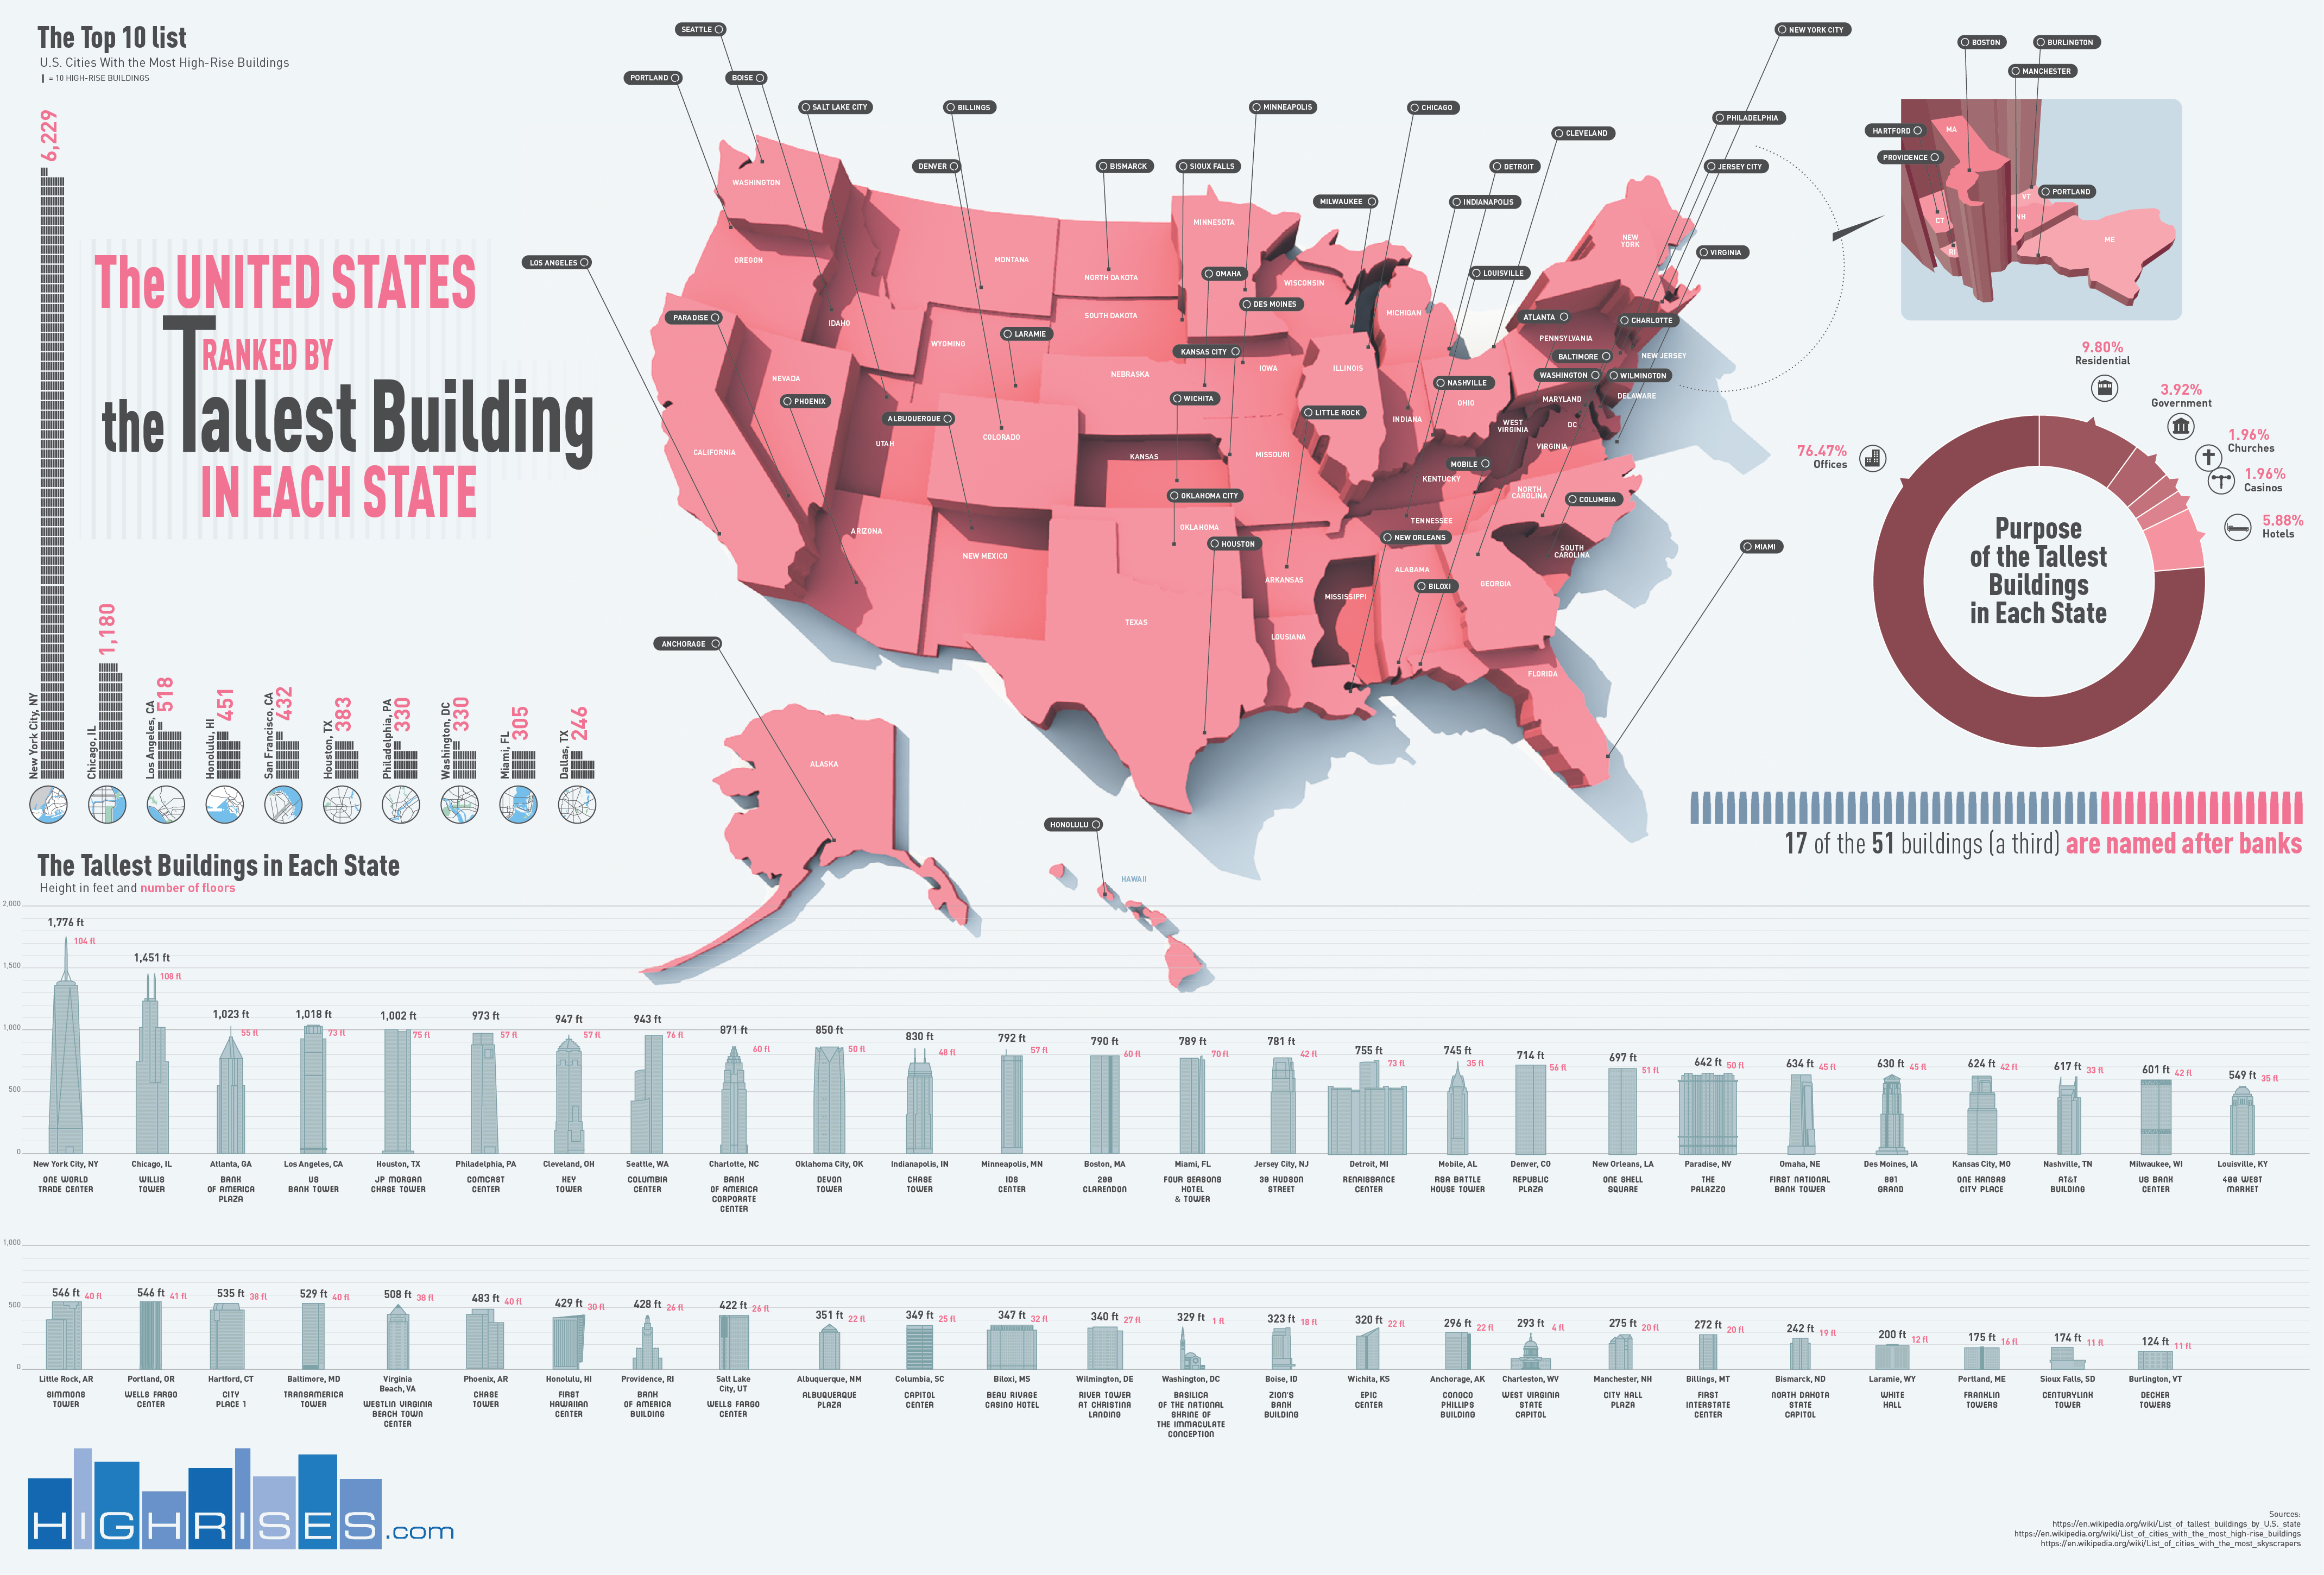 The United States Ranked by Tallest Building in Each State